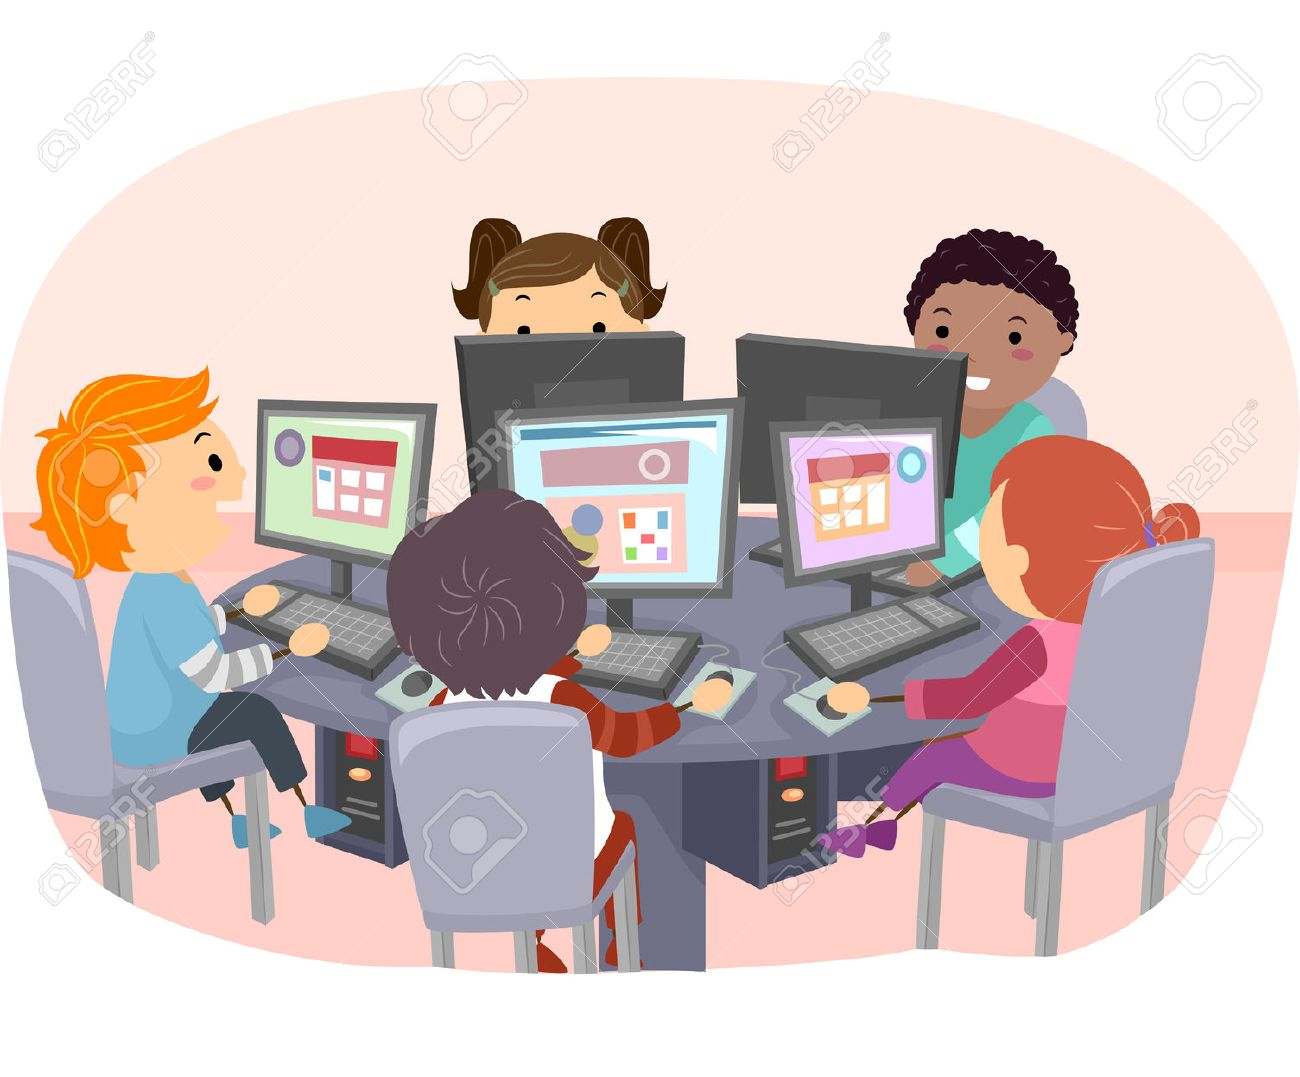 Image result for free images of kids on computers